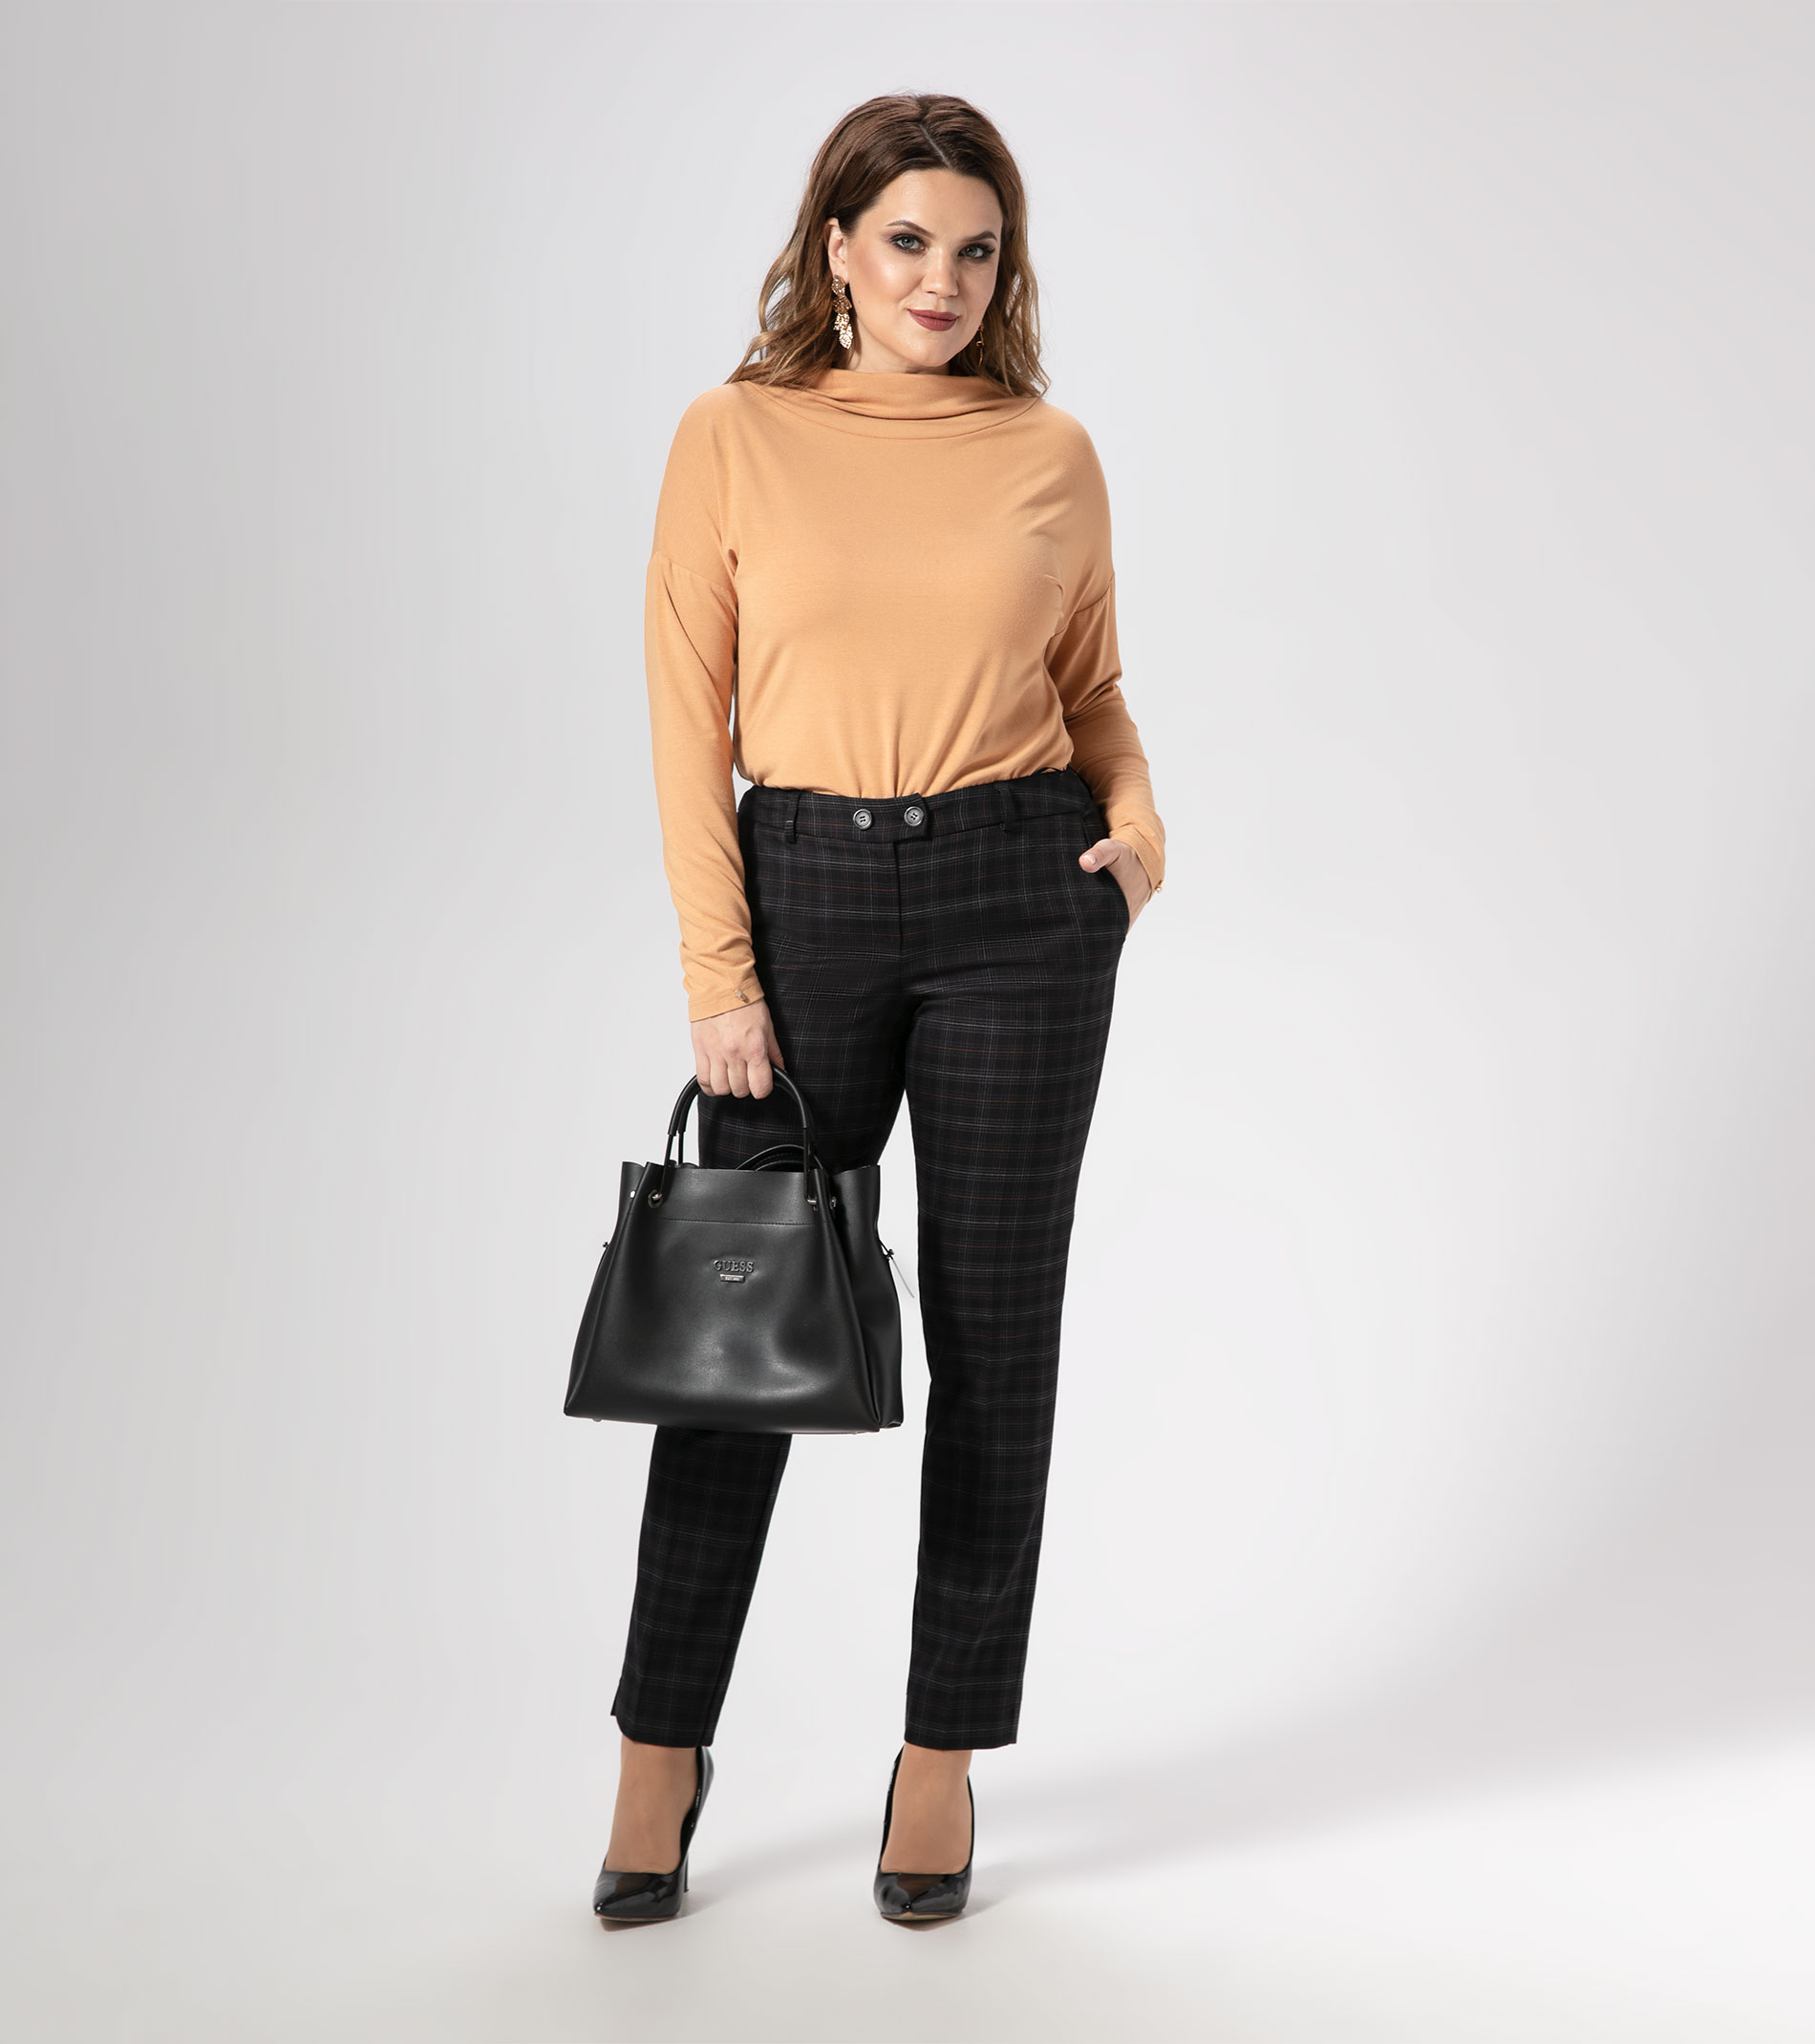 Women's trousers 465663